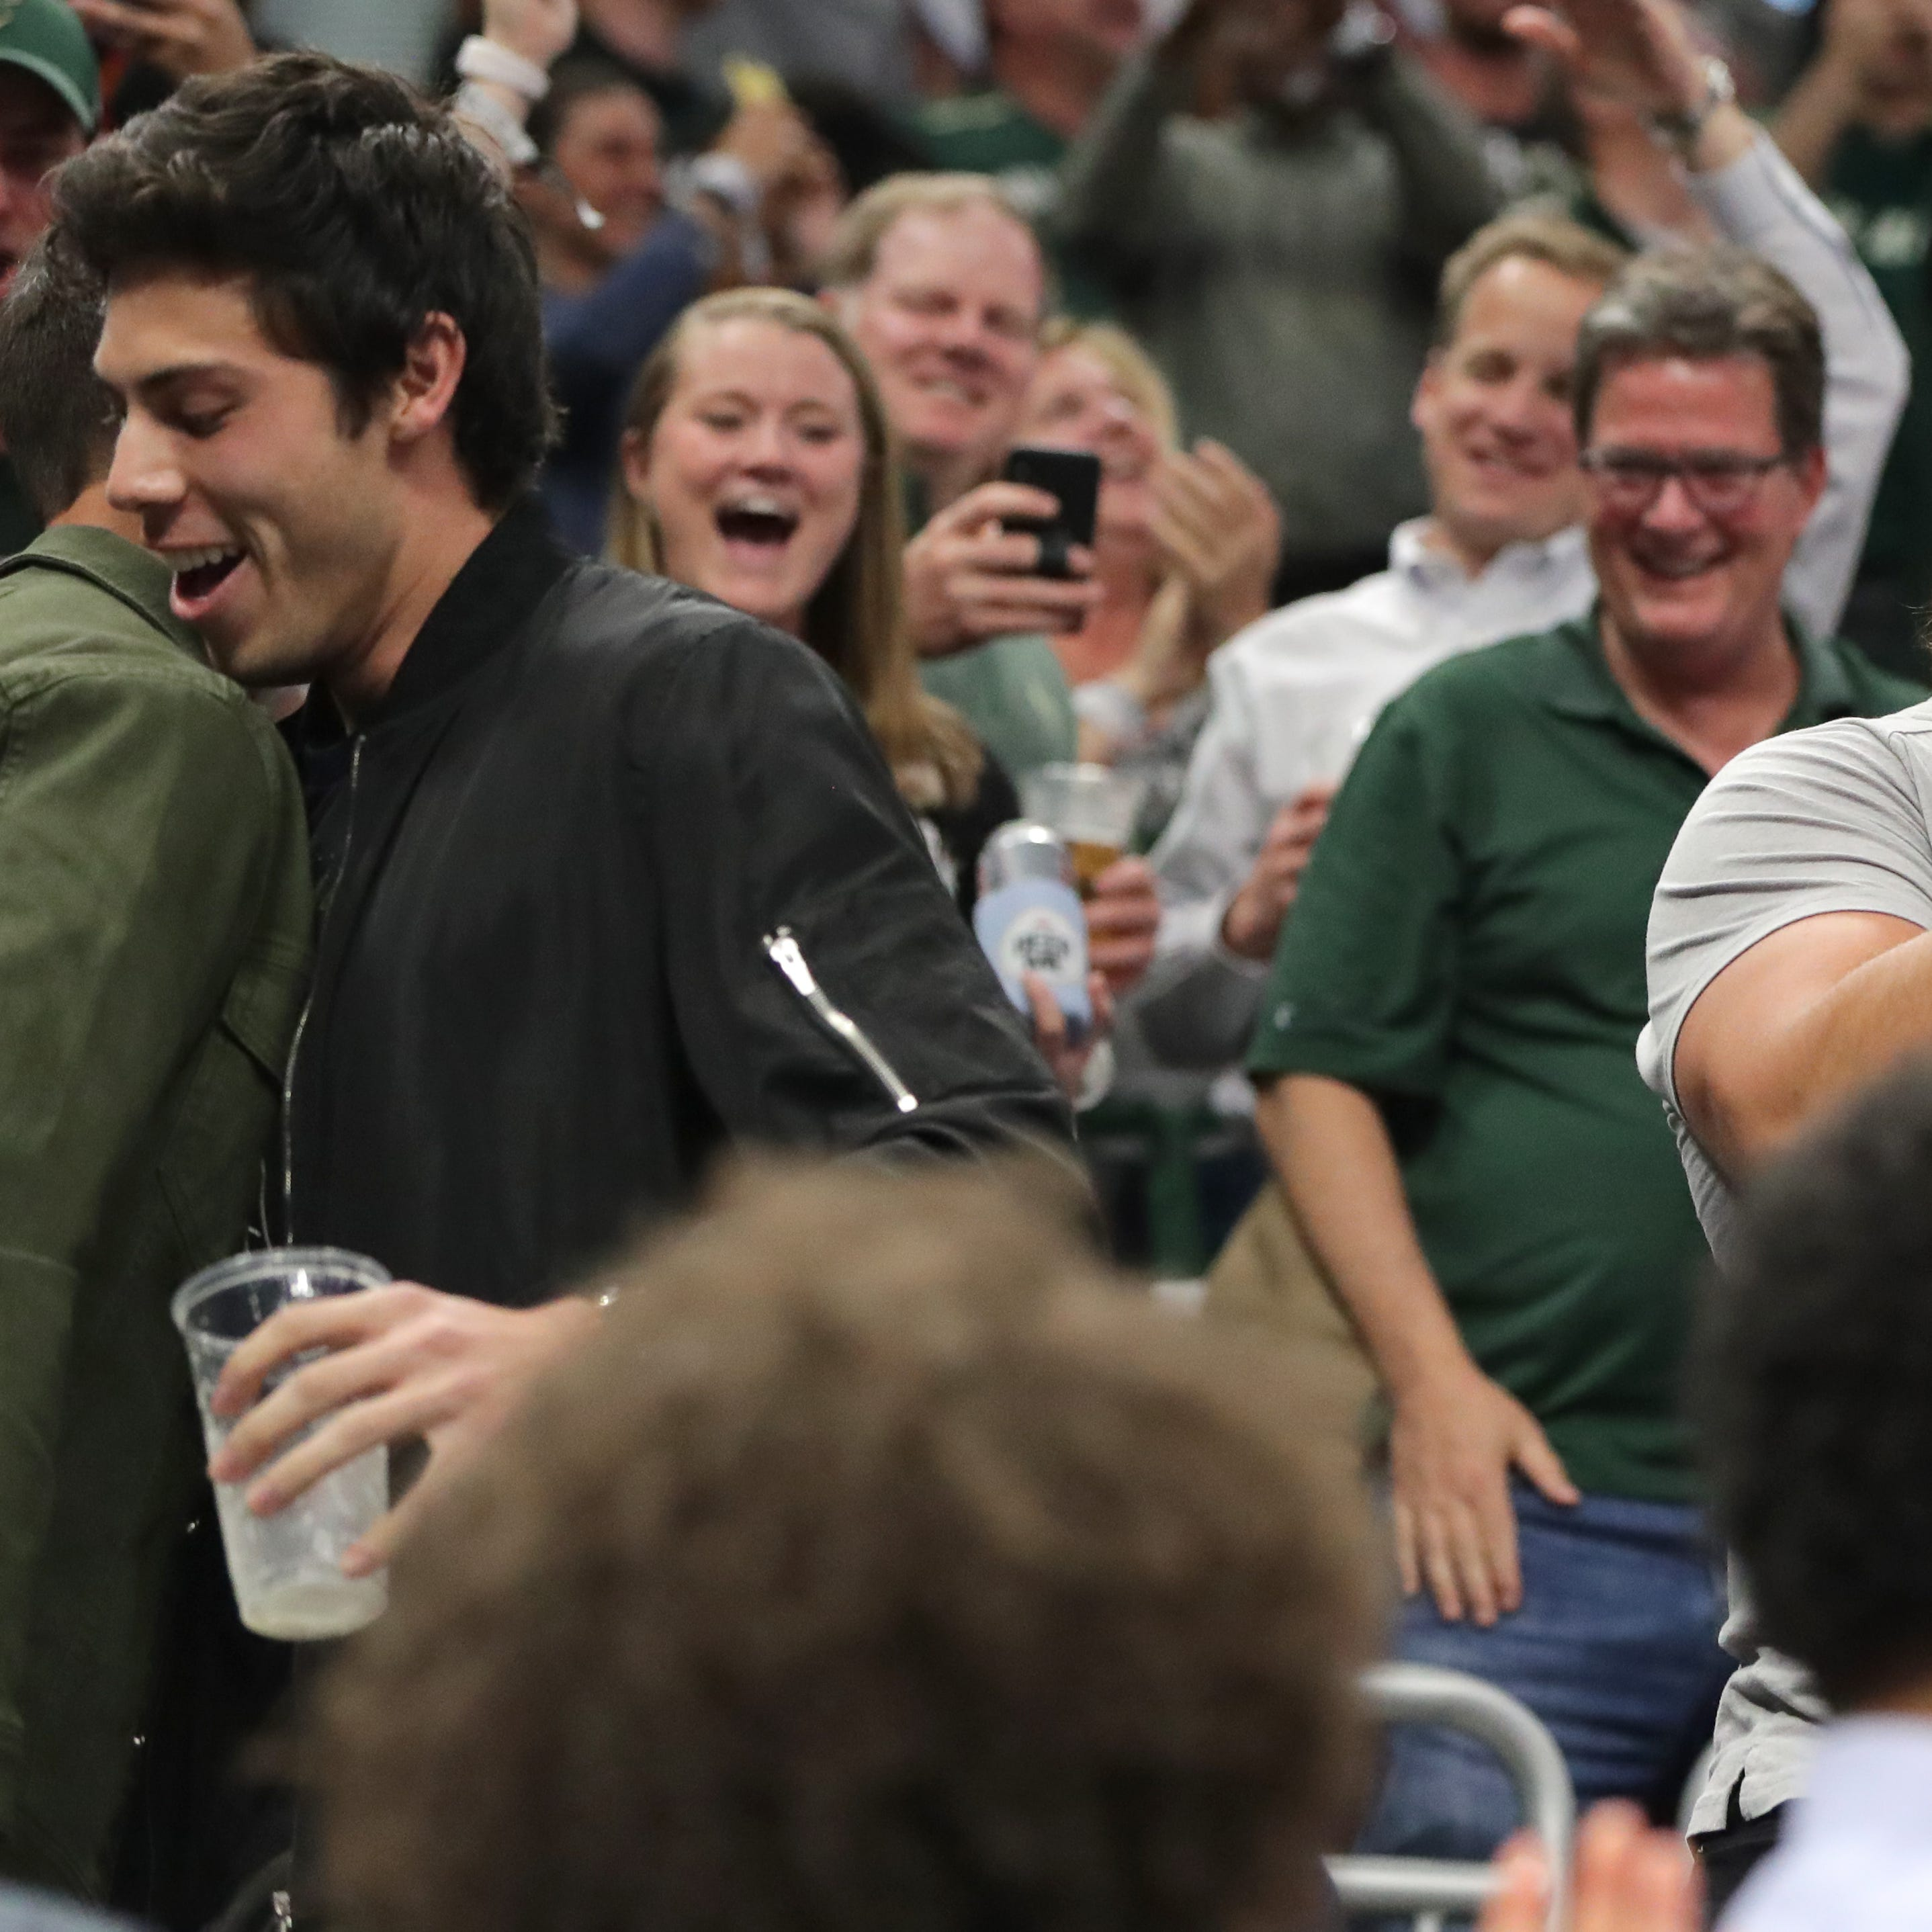 From courtside with 'Milwaukee's Drake' to the top of Fiserv Forum, Bucks fans sweat out Game 5